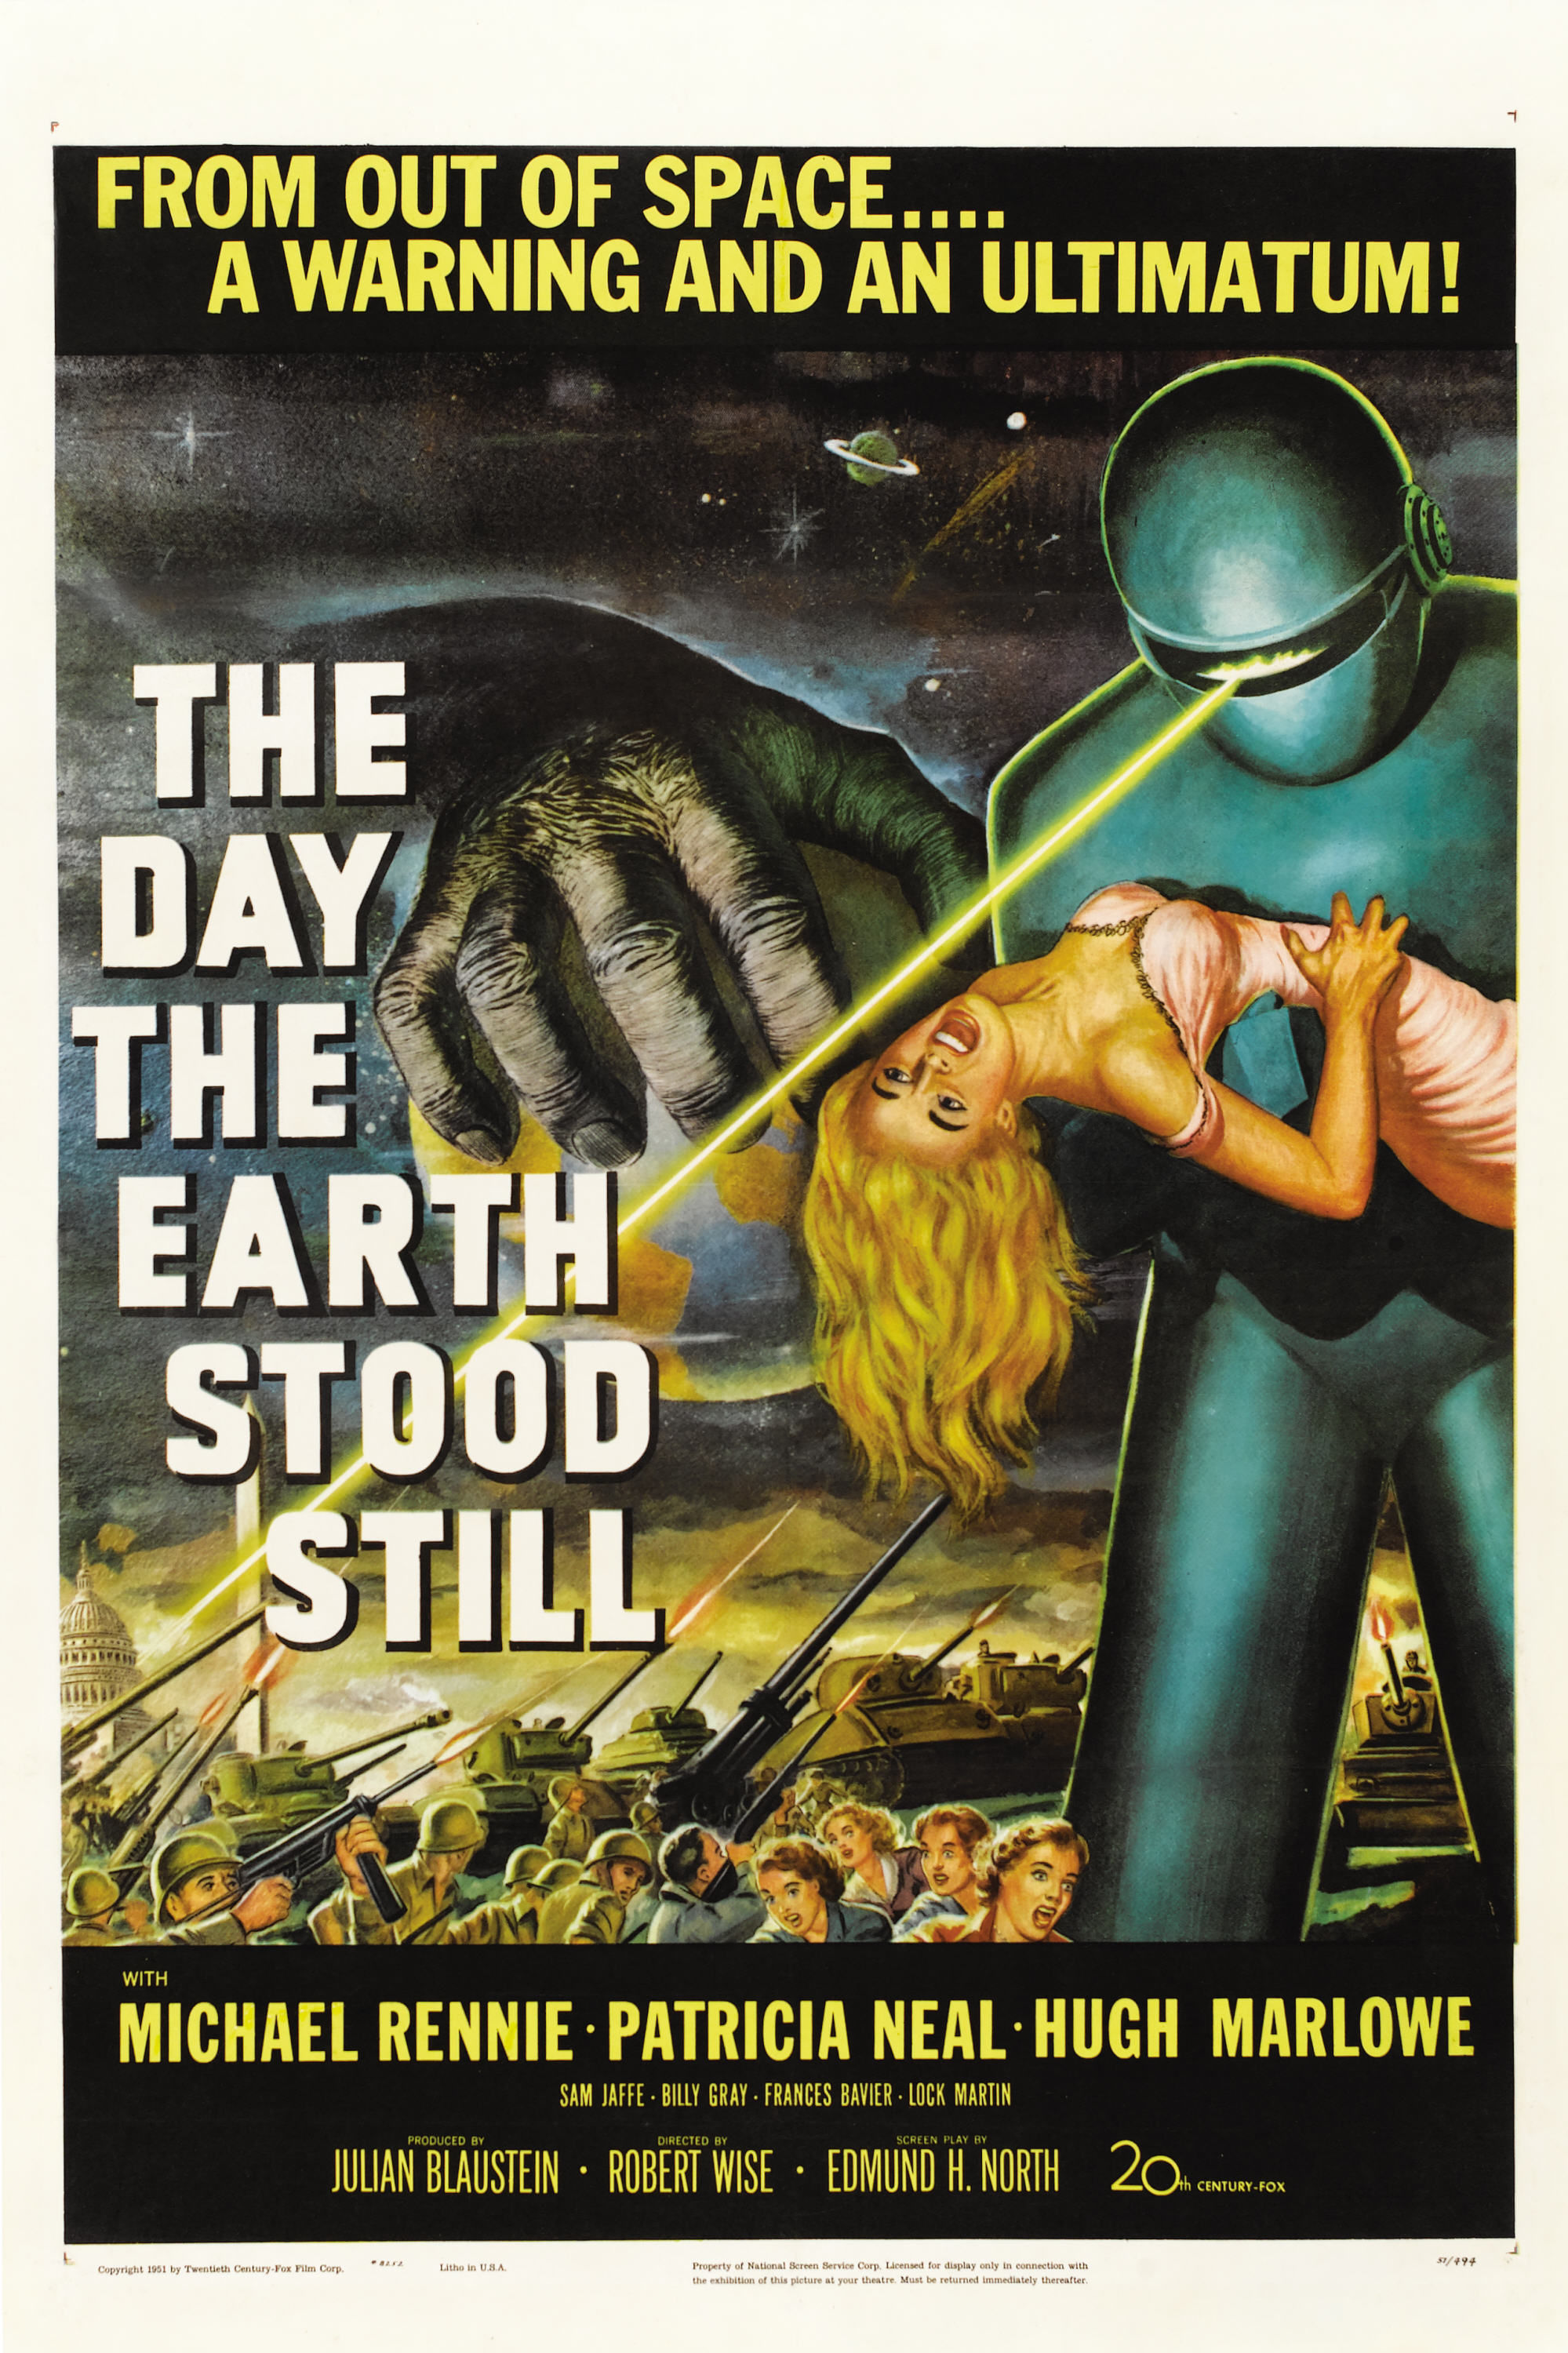 Name of Collectible 1951 The Day the Earth Stood Still Poster